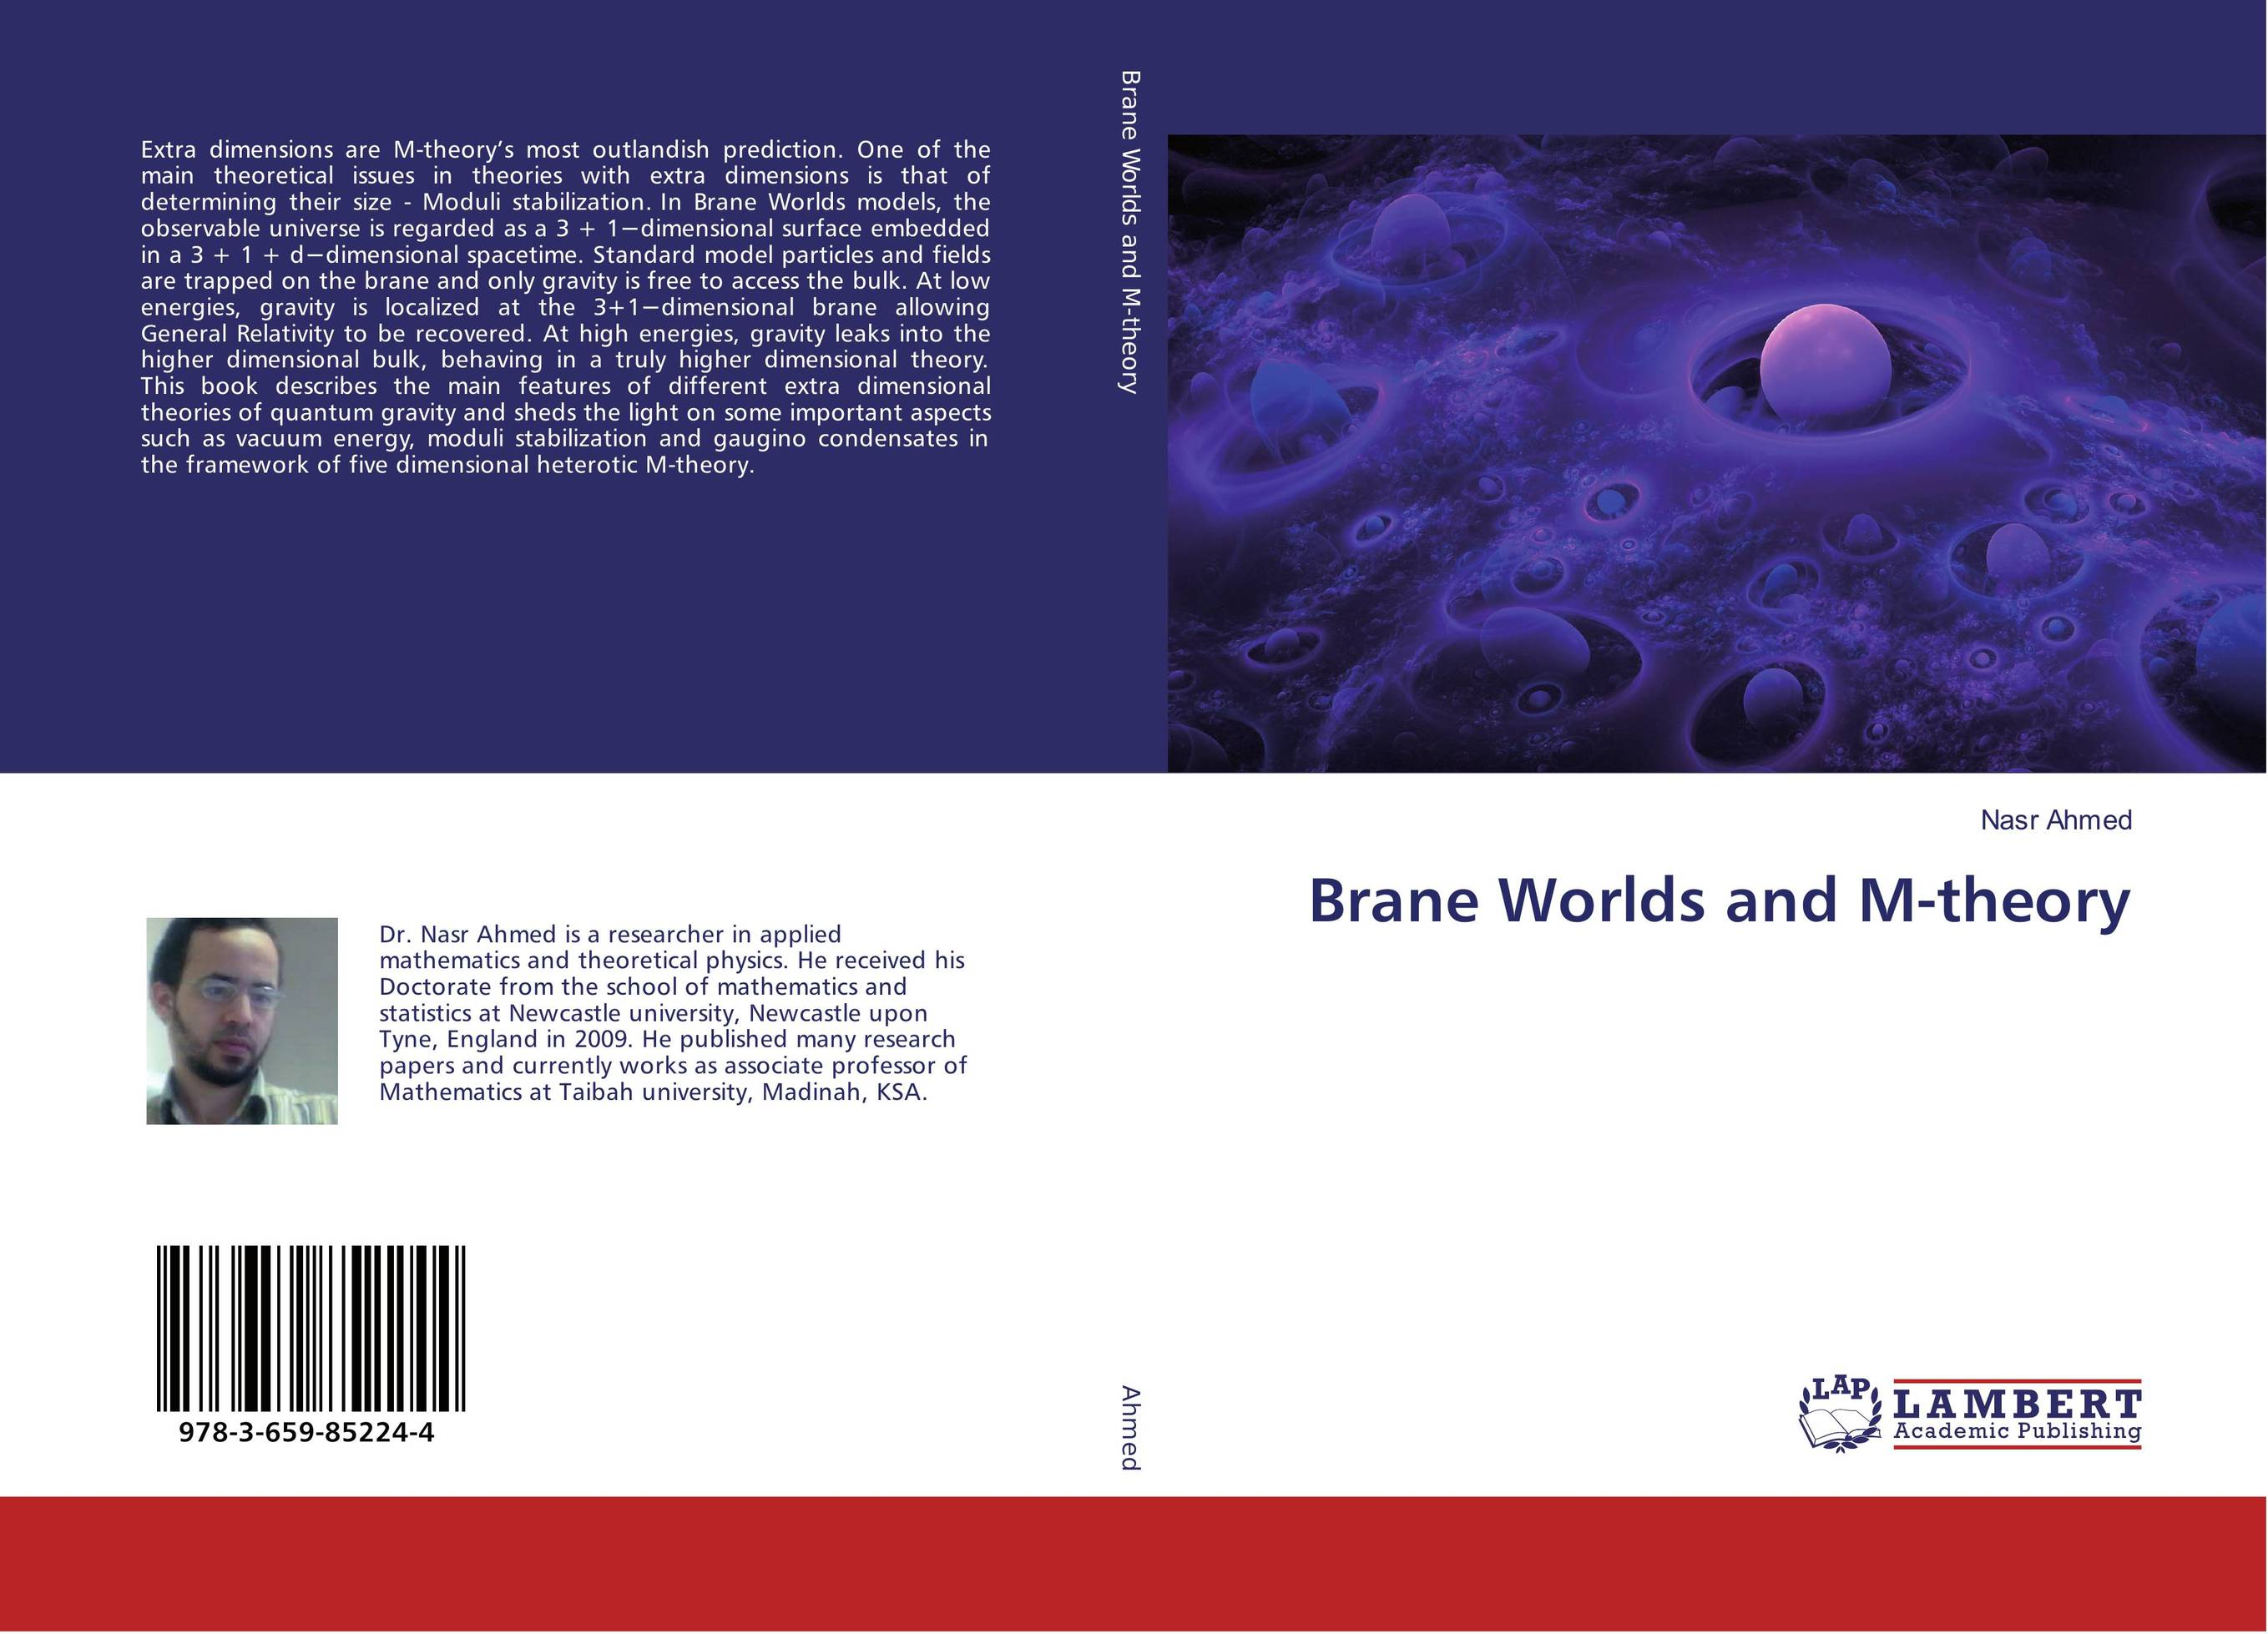 Brane Worlds and M-theory 3 dimensional scanner